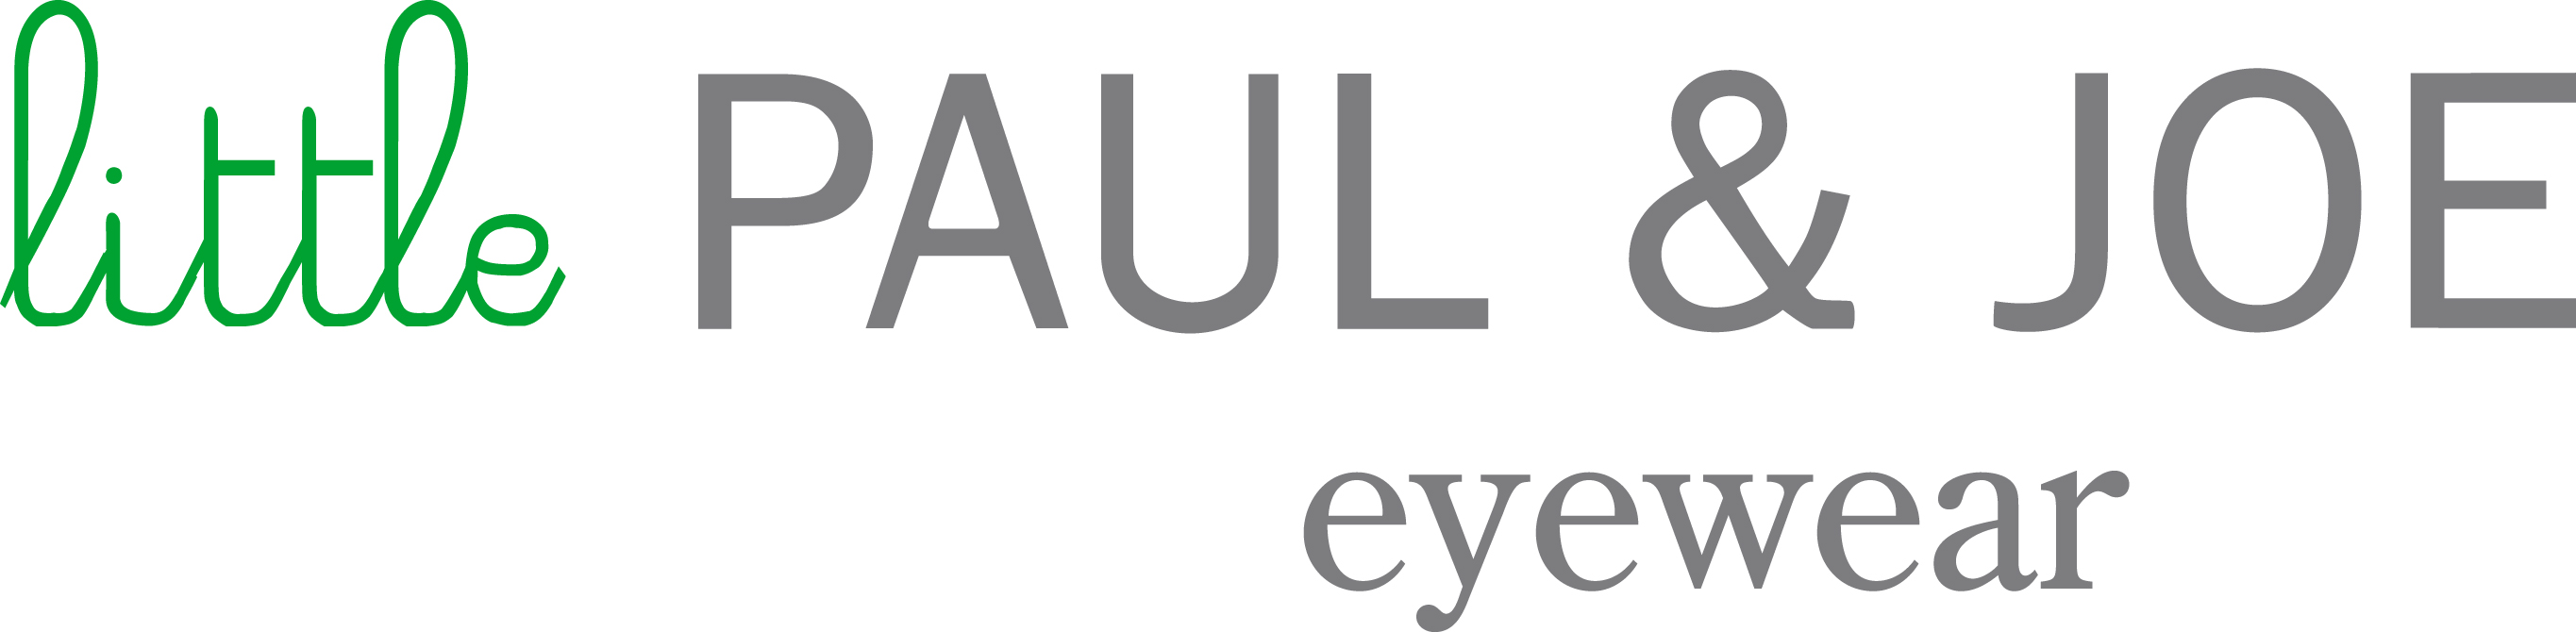 logo : LITTLE PAUL & JOE